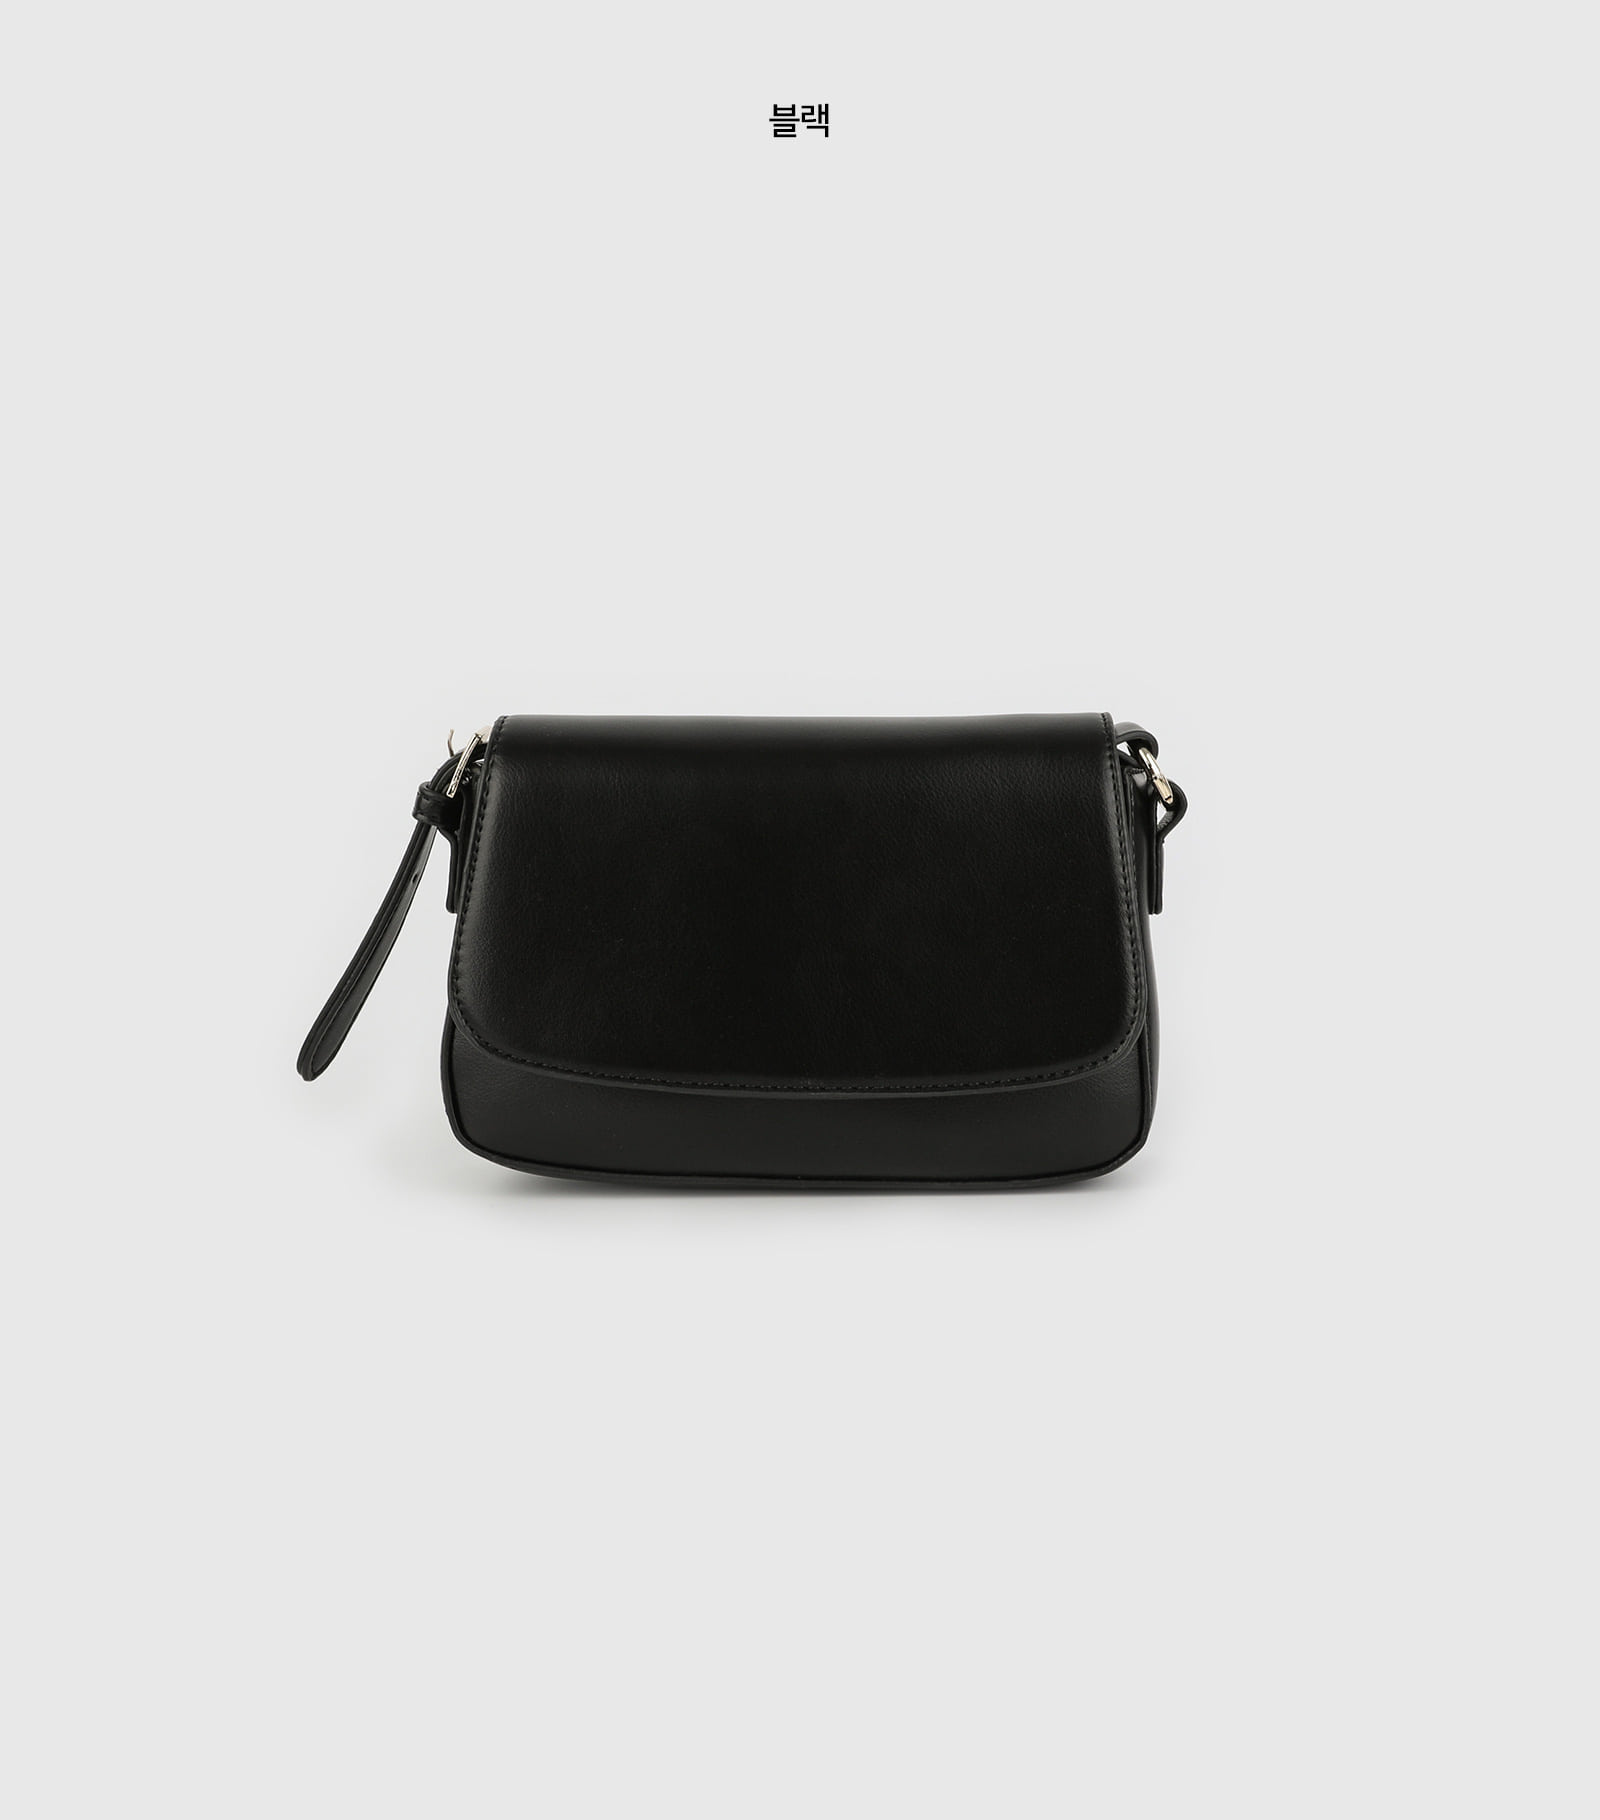 Lunch Square Twist Two Way Shoulder Bag